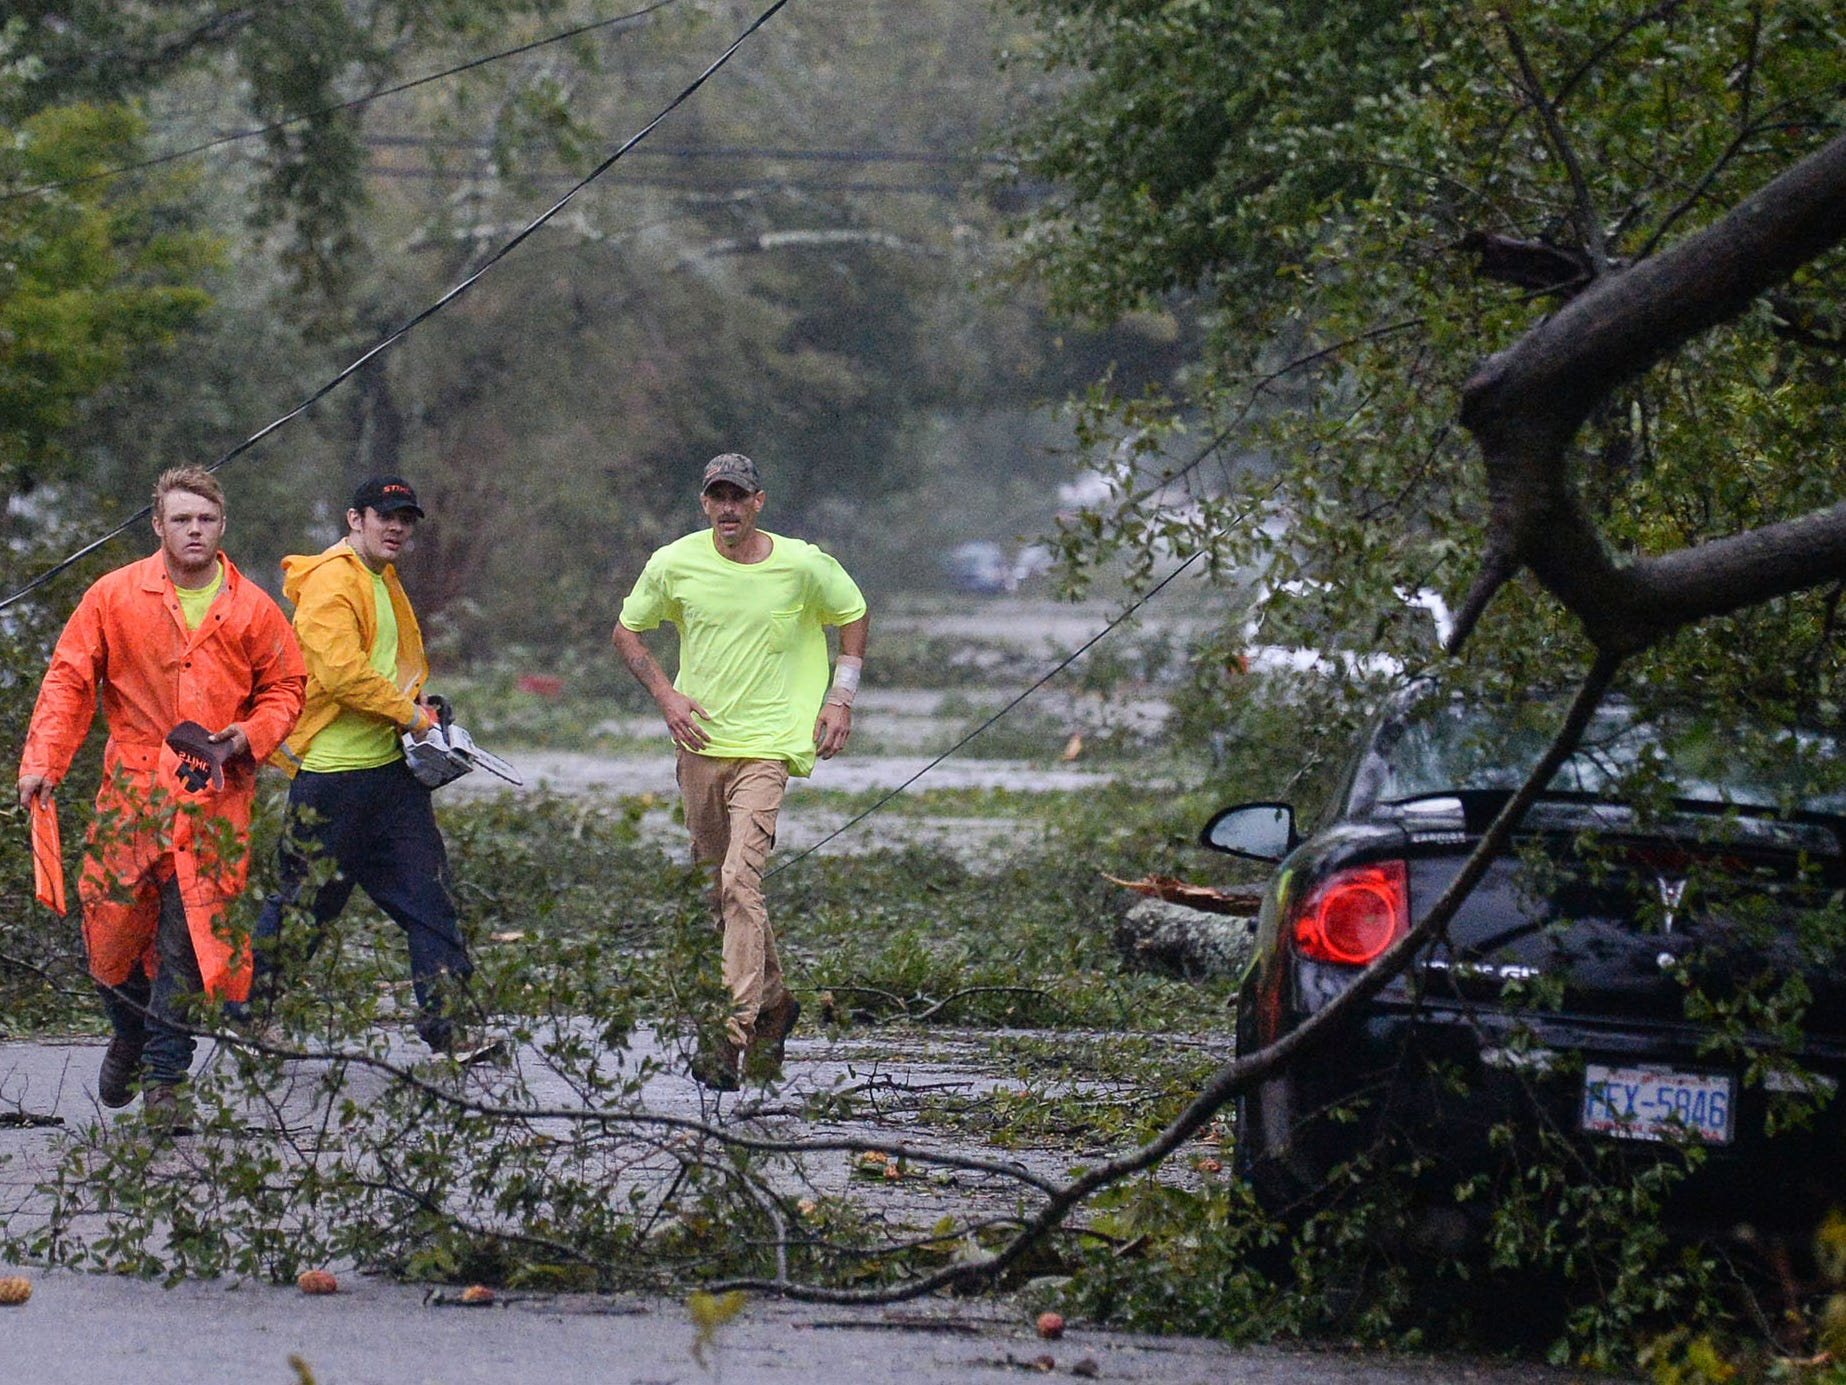 Men from a tree cutting service help clear a blocked road near downtown Wilmington, North Carolina, on Friday, September 14, 2018. (Ken Ruinard / Greenville News / Gannett USA Today Network / 2018 )